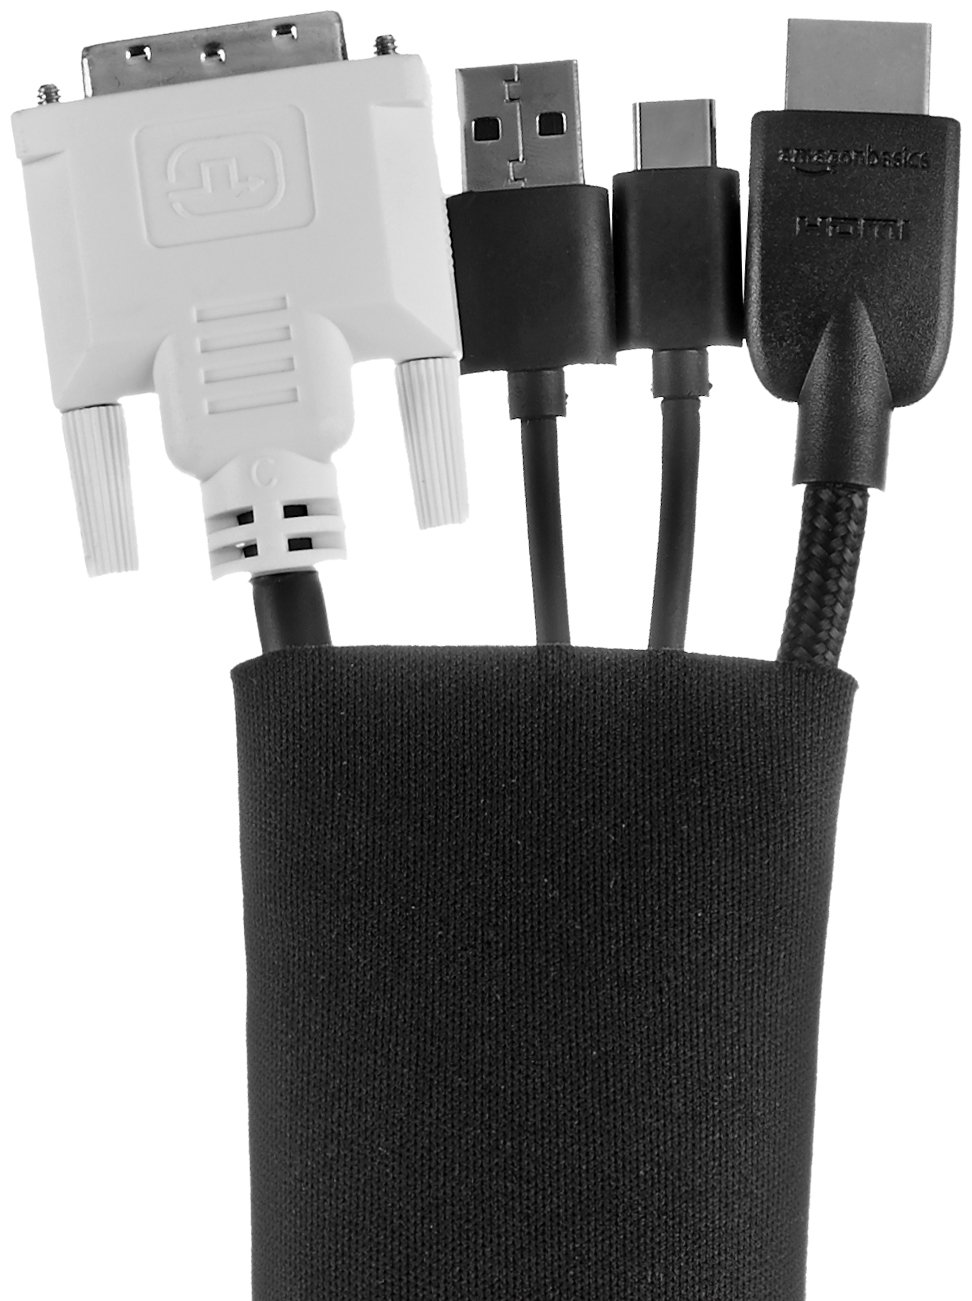 AmazonBasics Cable Sleeve - Zipper, 20-Inch, Black, 4-Pack